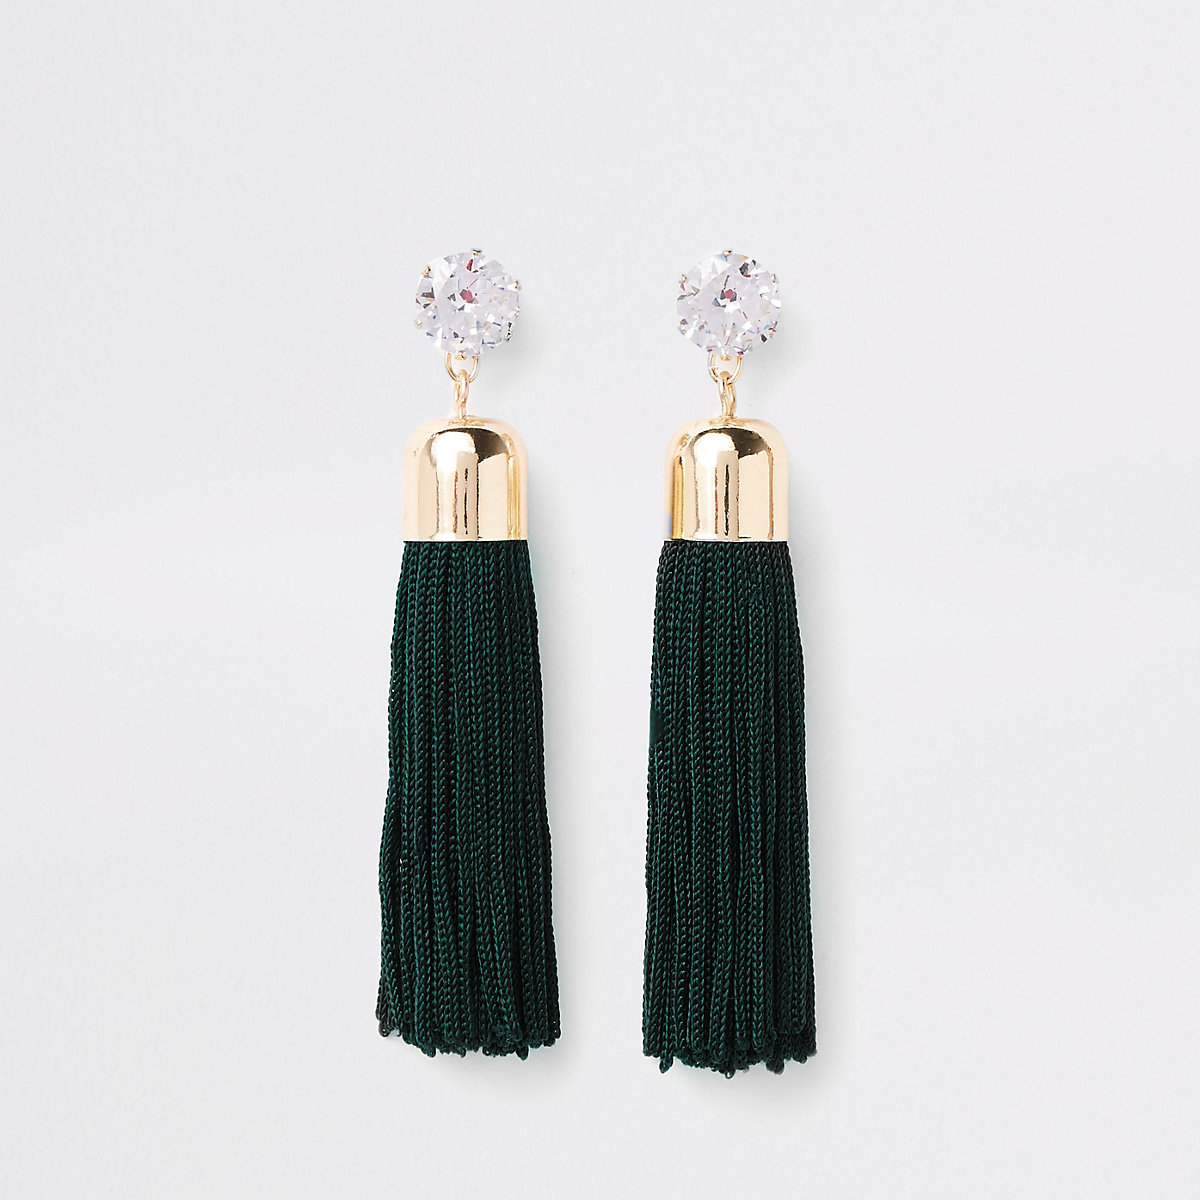 Gold tone green rhinestone tassel drop earrings